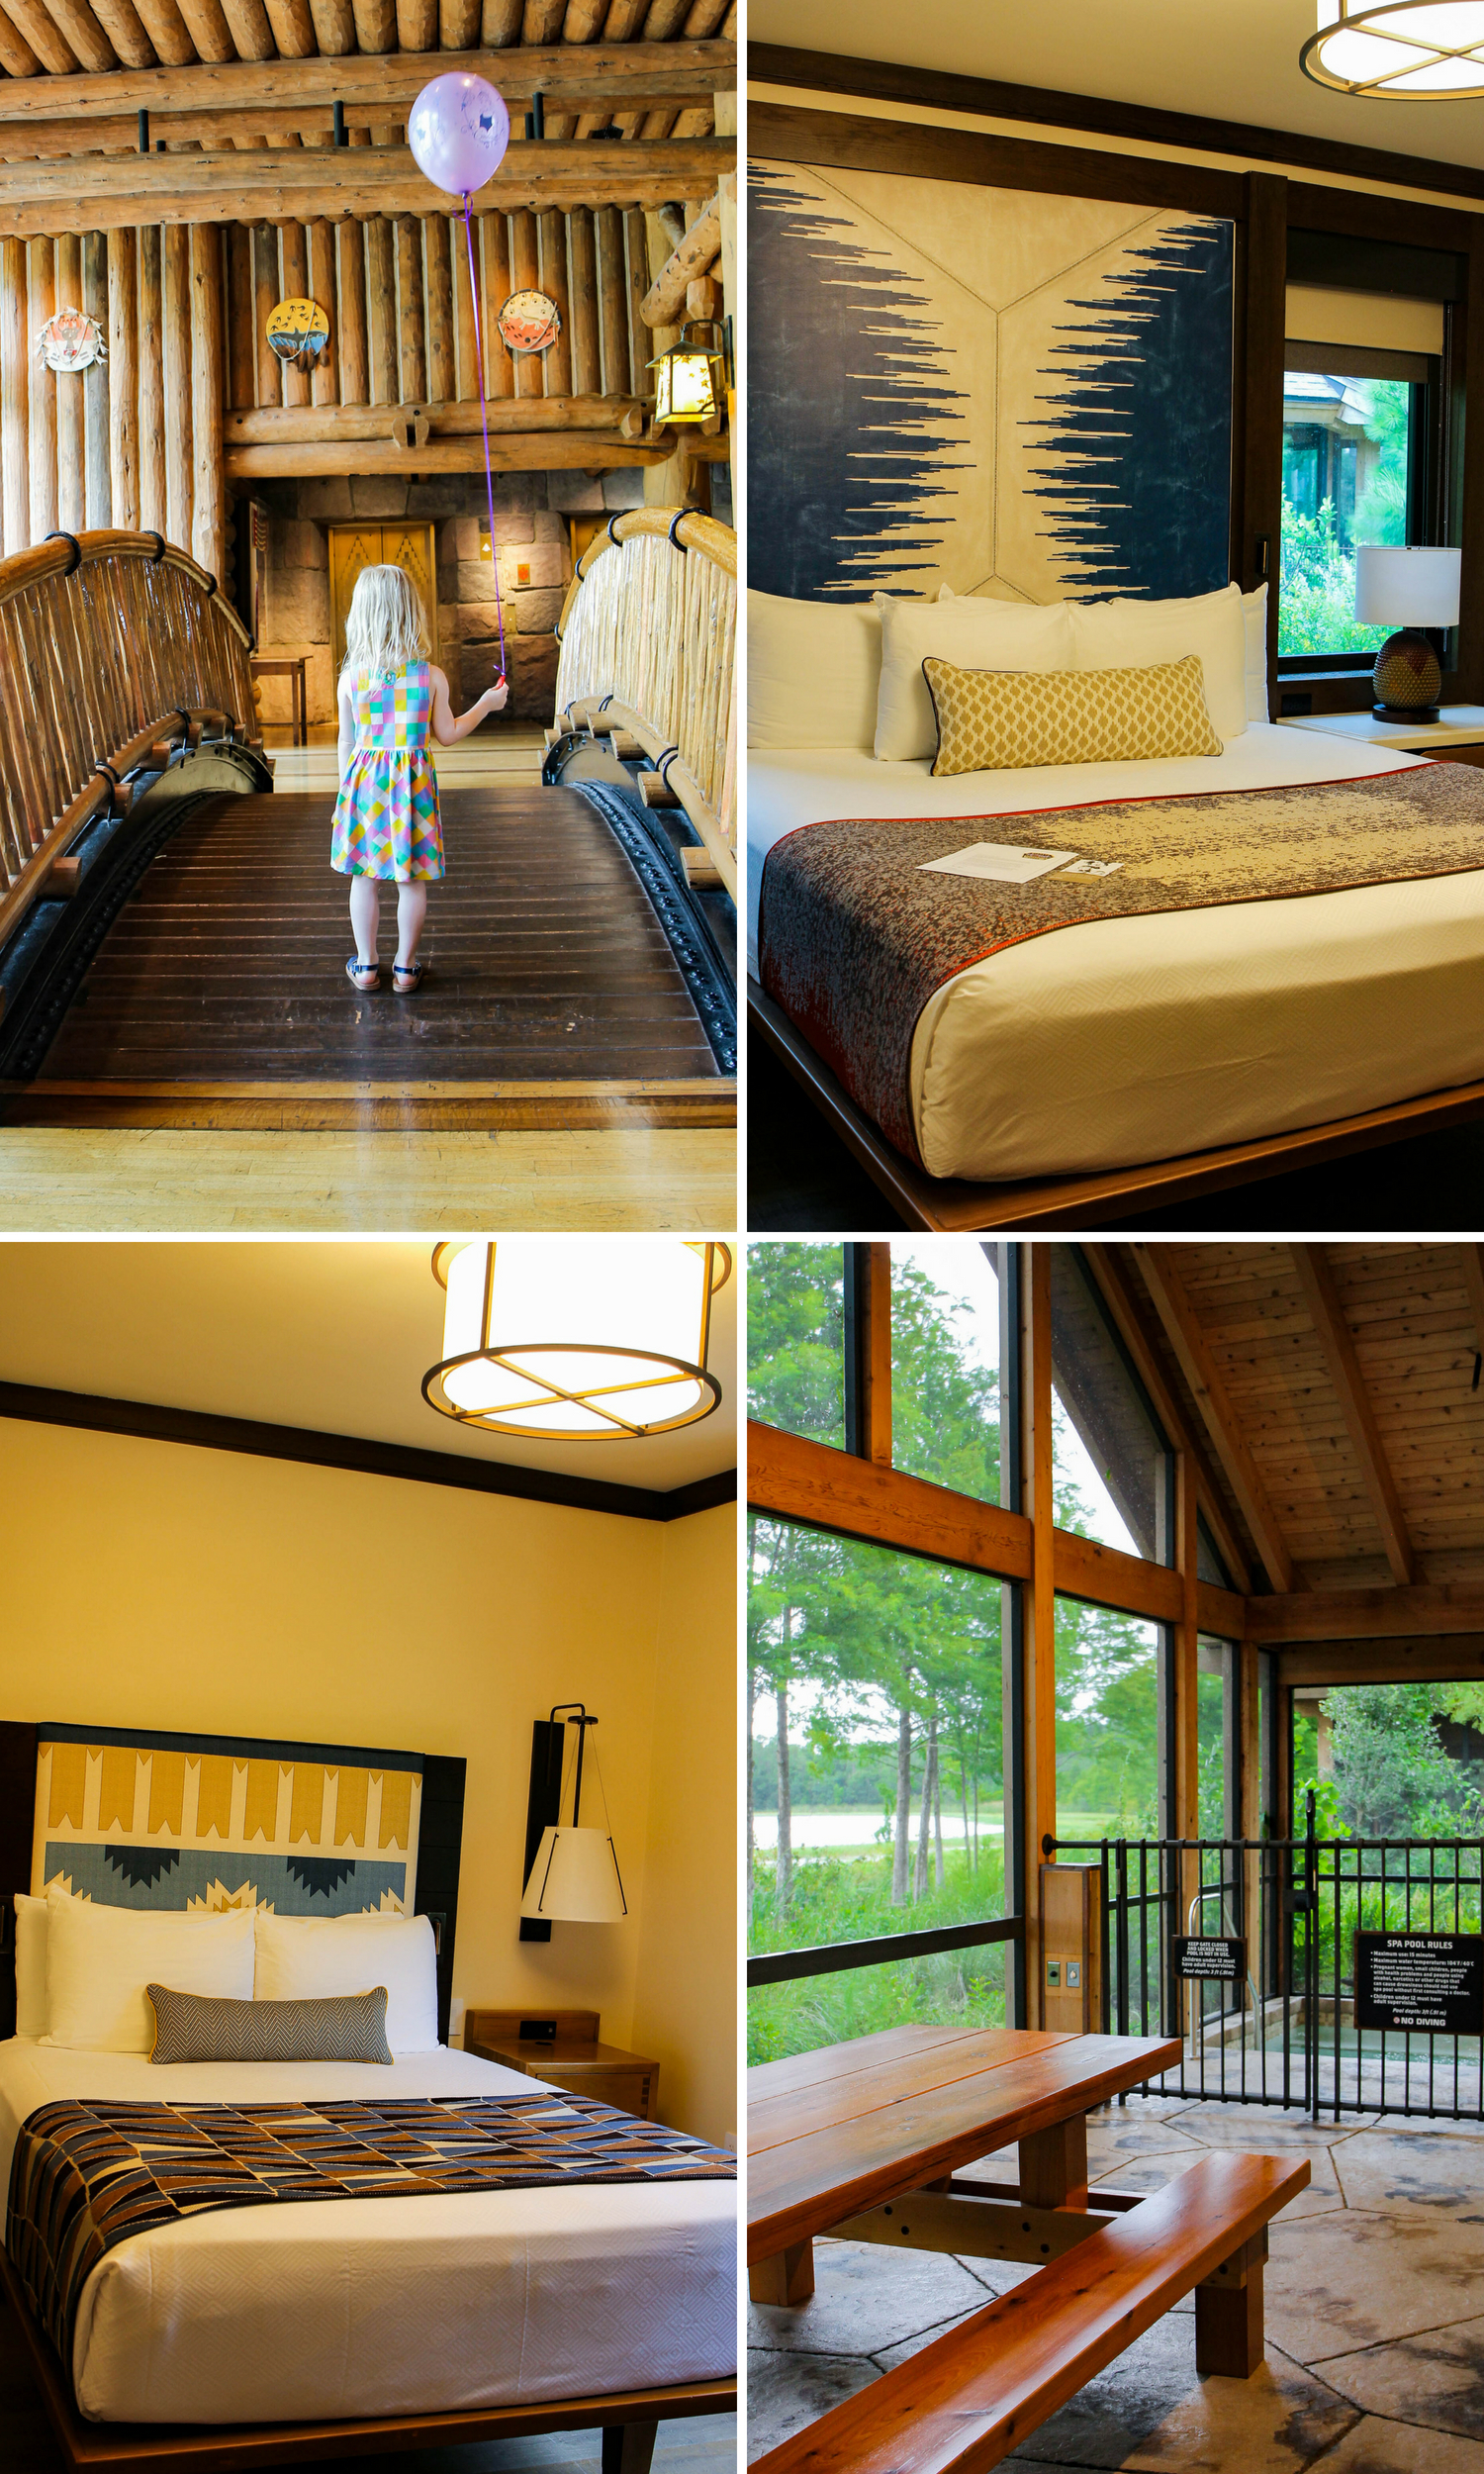 Check out these Copper Creek Villas in room photos and the full review!